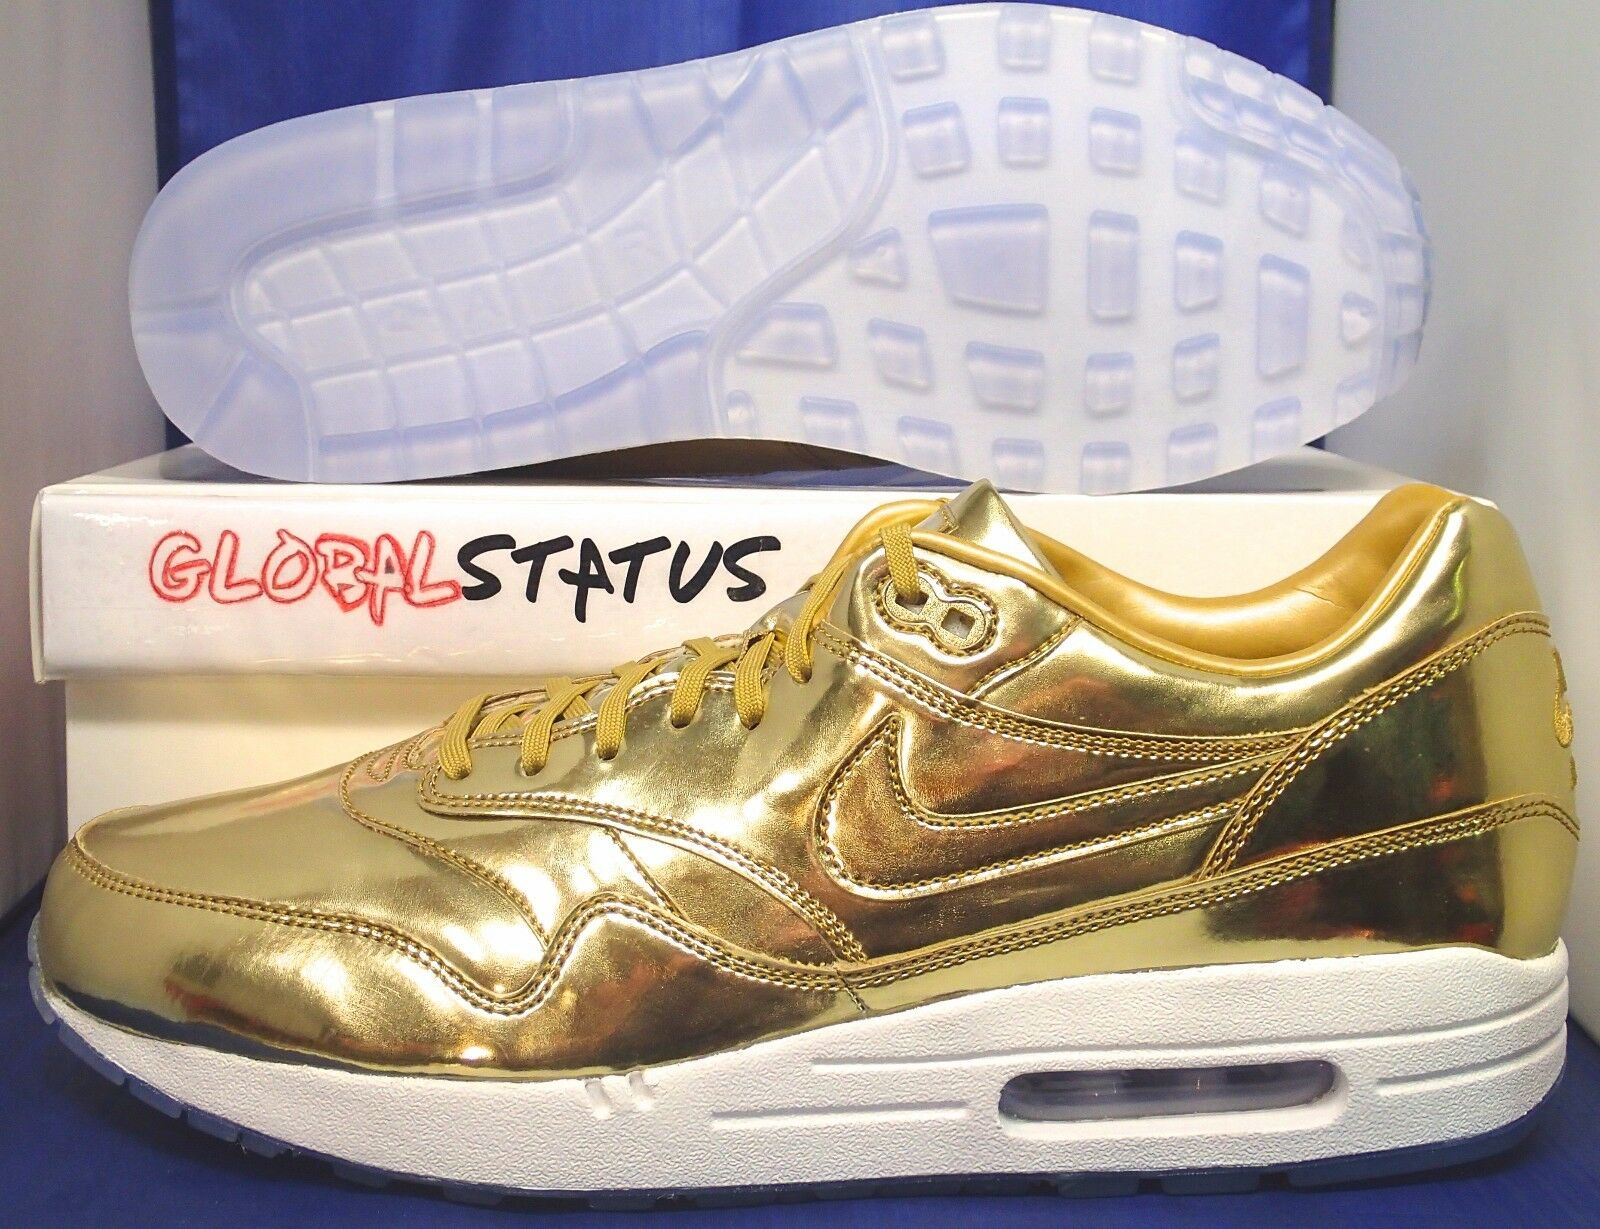 MENS NIKE ID AIR MAX 1 PRM LIQUID GOLD DOMINICAN REPUBLIC SHOES 829357 991 Price reduction The latest discount shoes for men and women